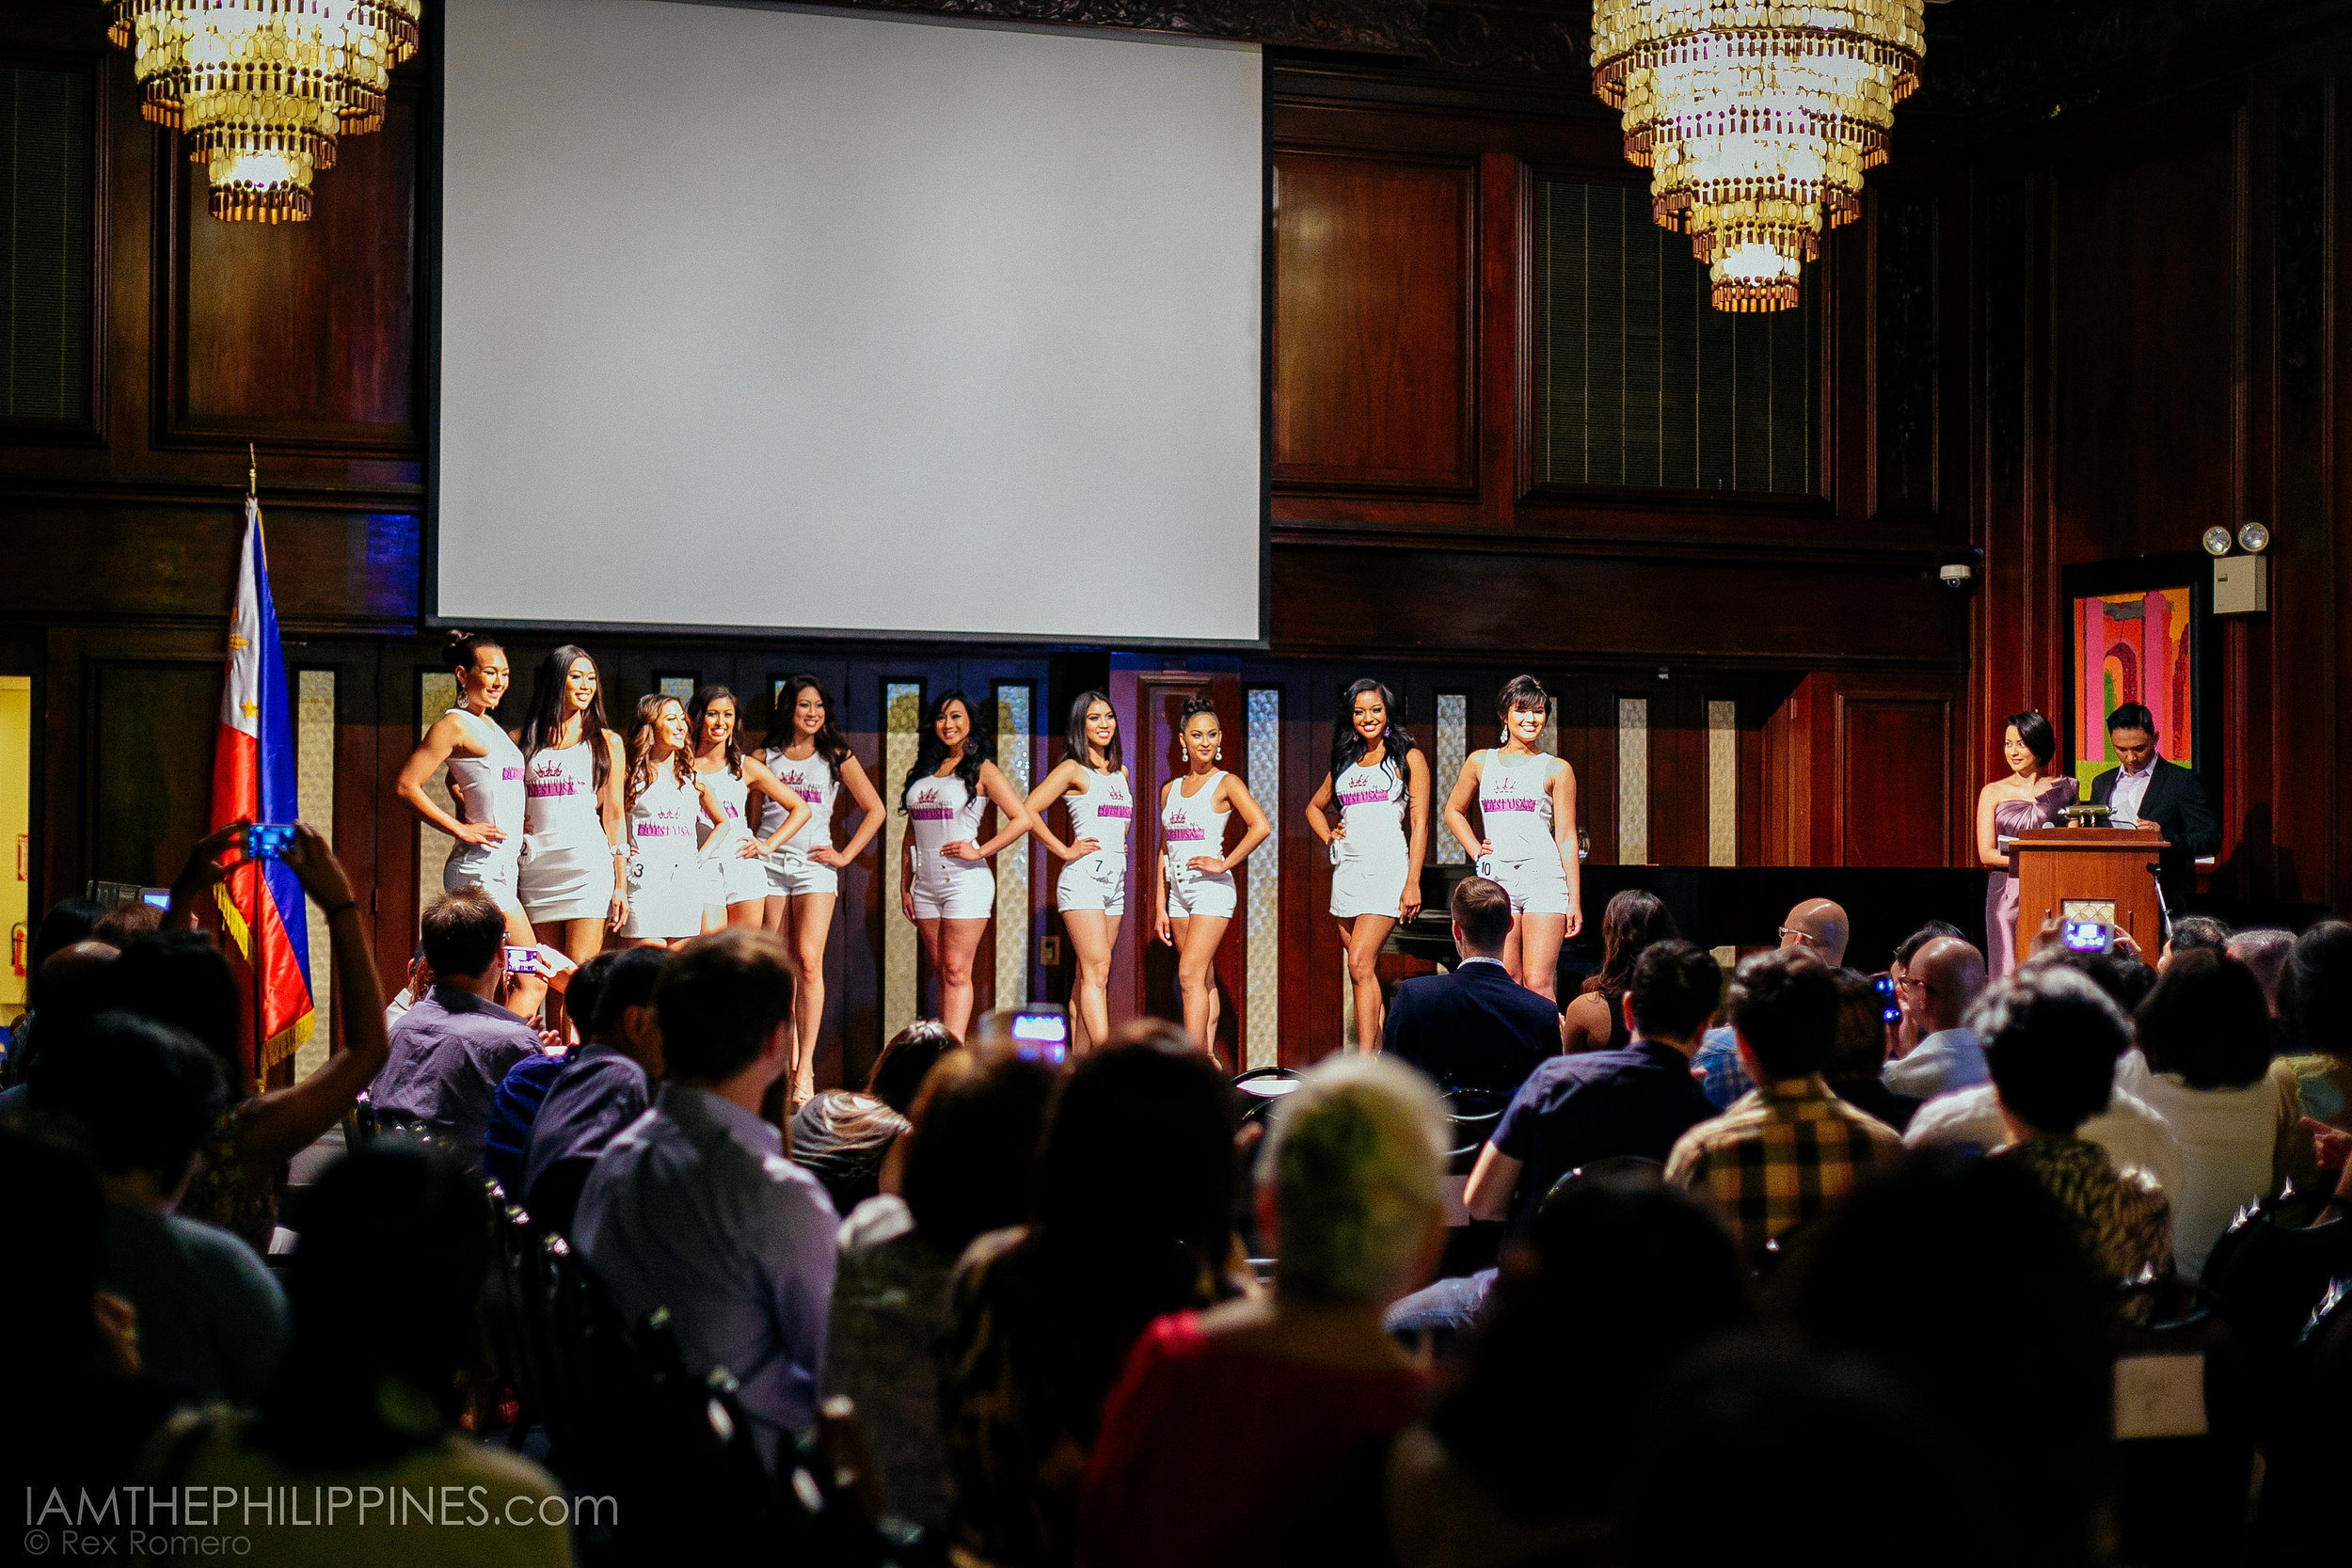 Miss Philippines Quest at the PH Embassy